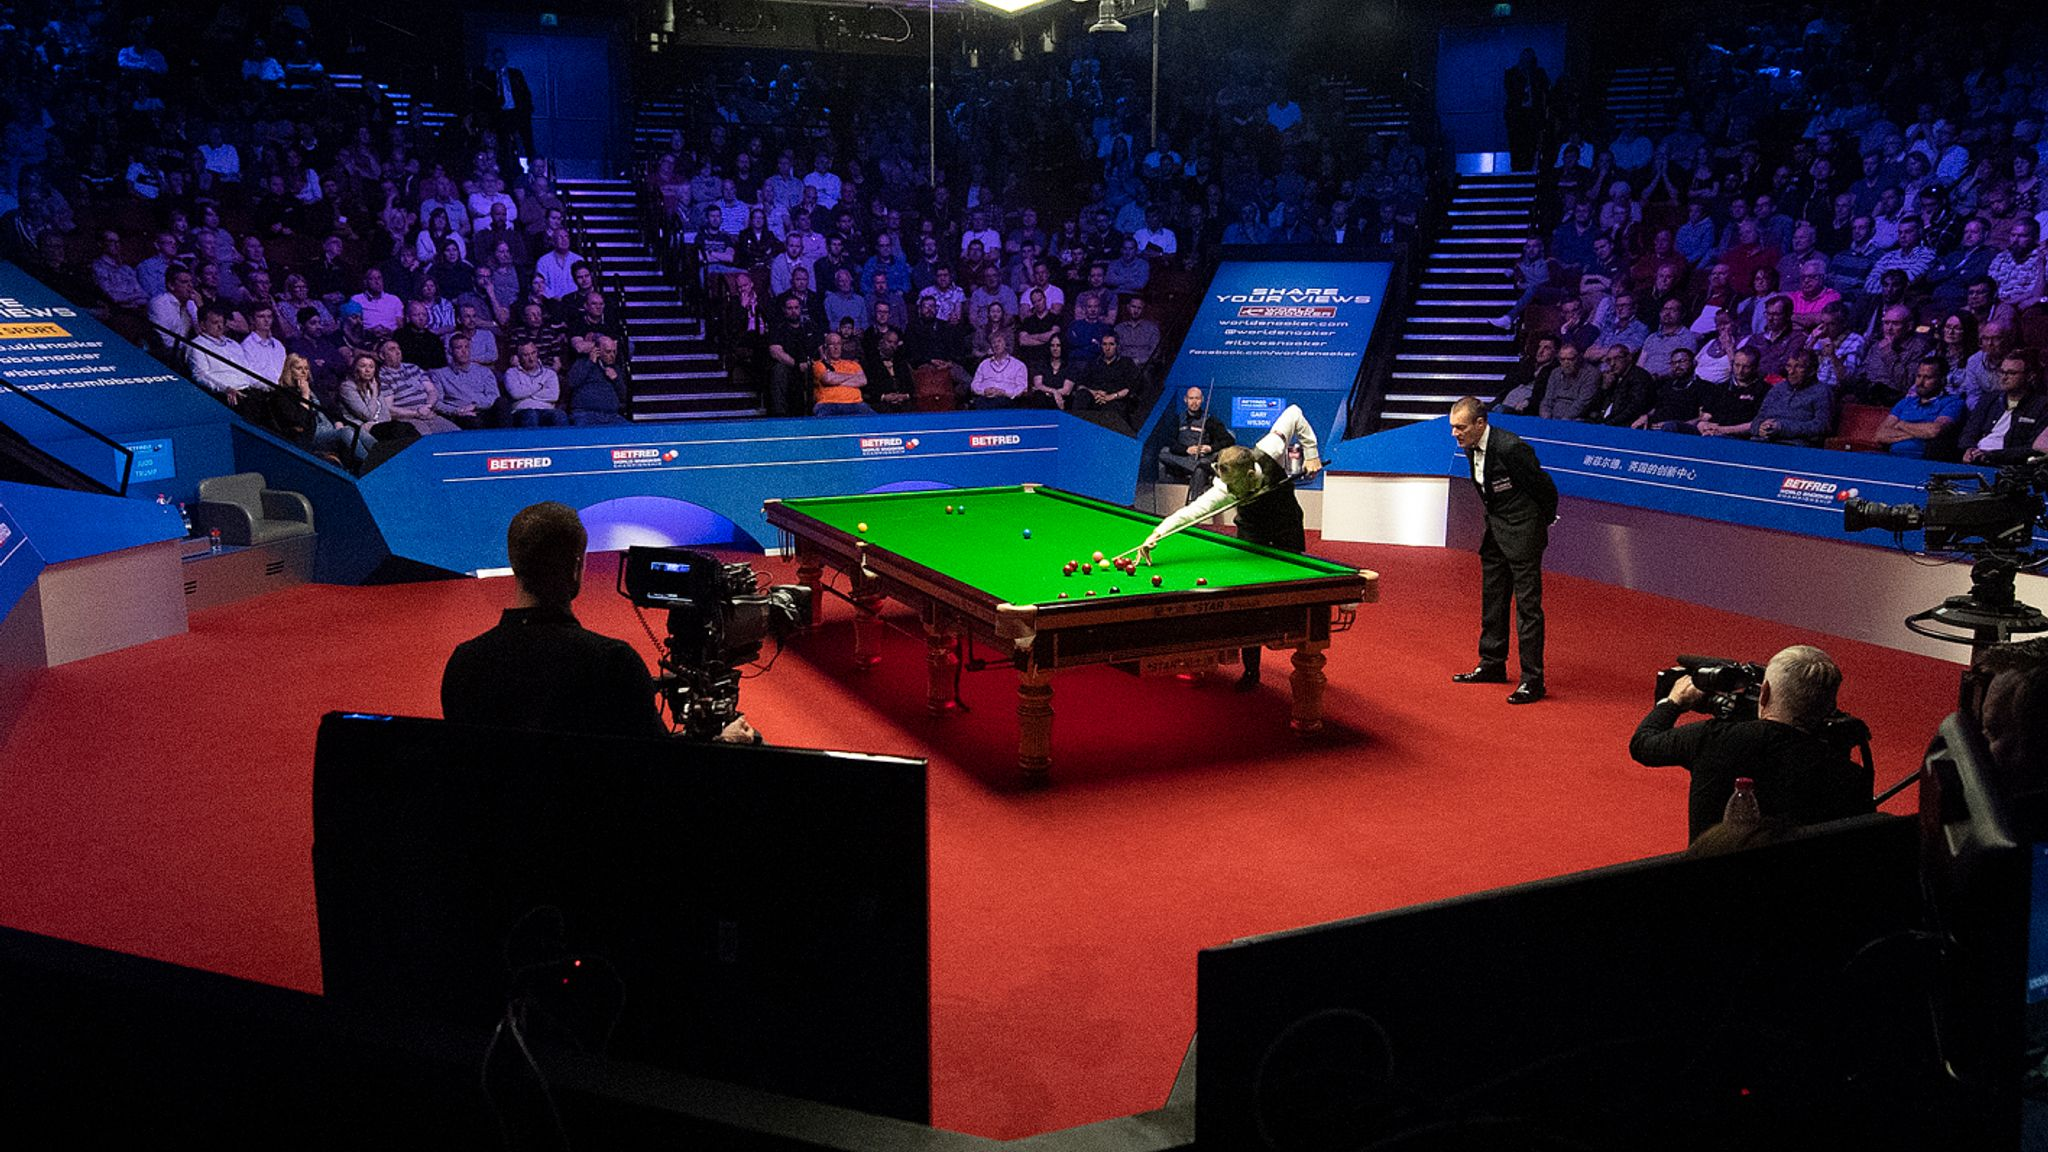 World Snooker Championships Trial research for the return of mass events